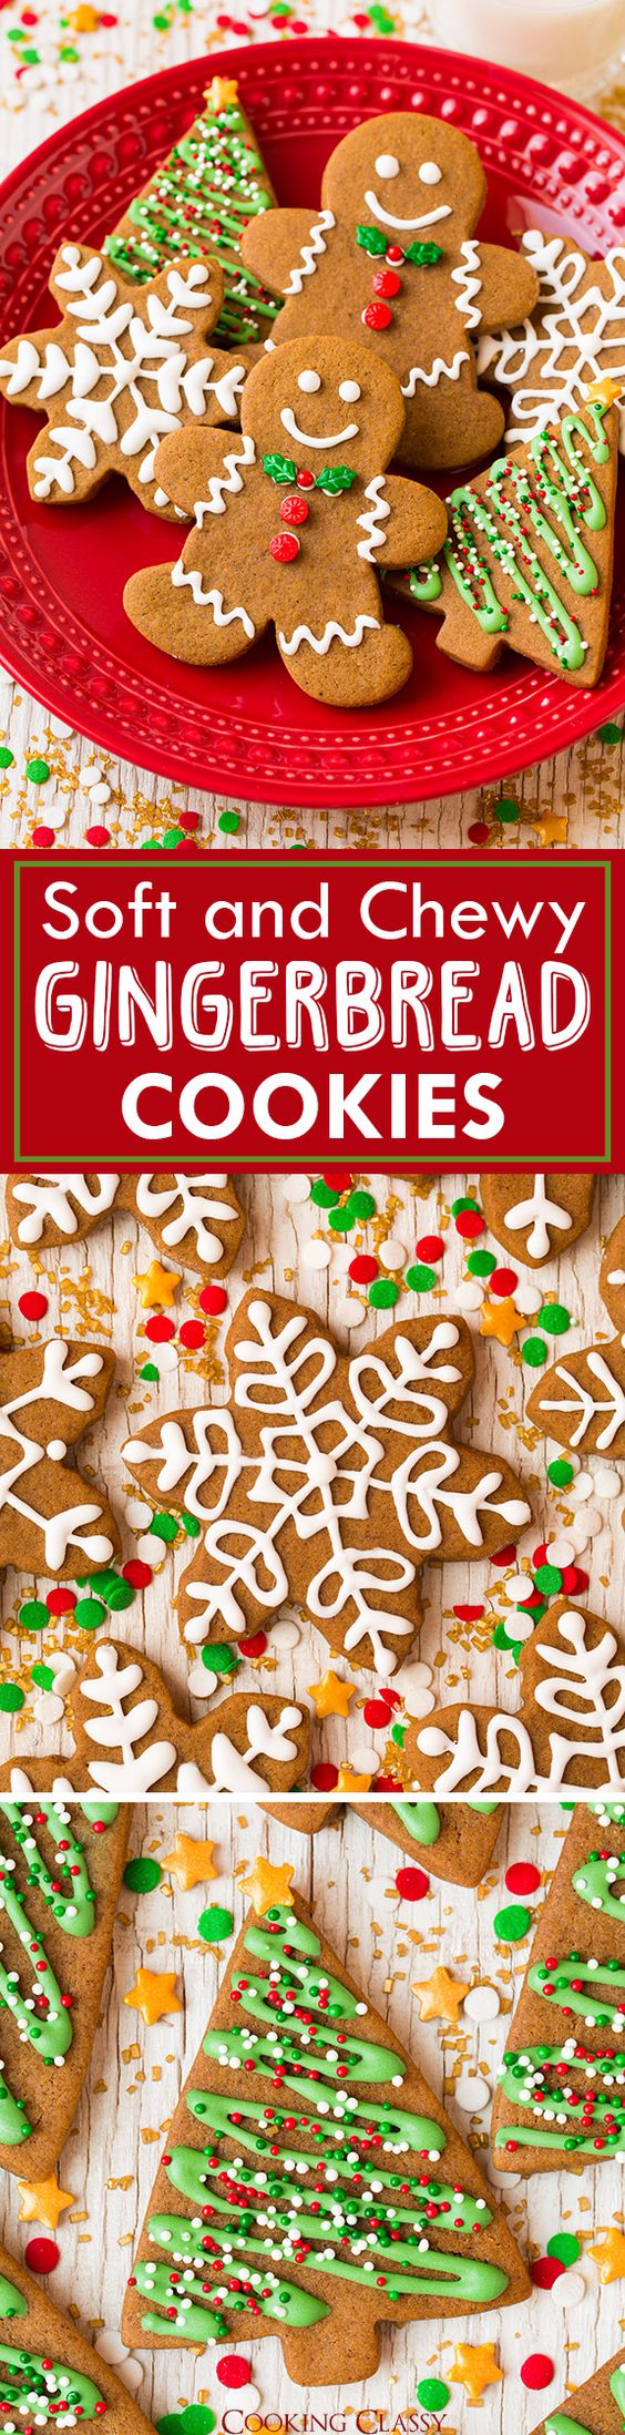 Recipes for Christmas Cookies- Gingerbread Cookies - Easy Decorated Holiday Cookies - Candy Cookie Recipes Ideas for Kids - Traditional Favorites and Gluten Free and Healthy Versions - Quick No Bake Cookies and Last Minute Desserts for the Holidays